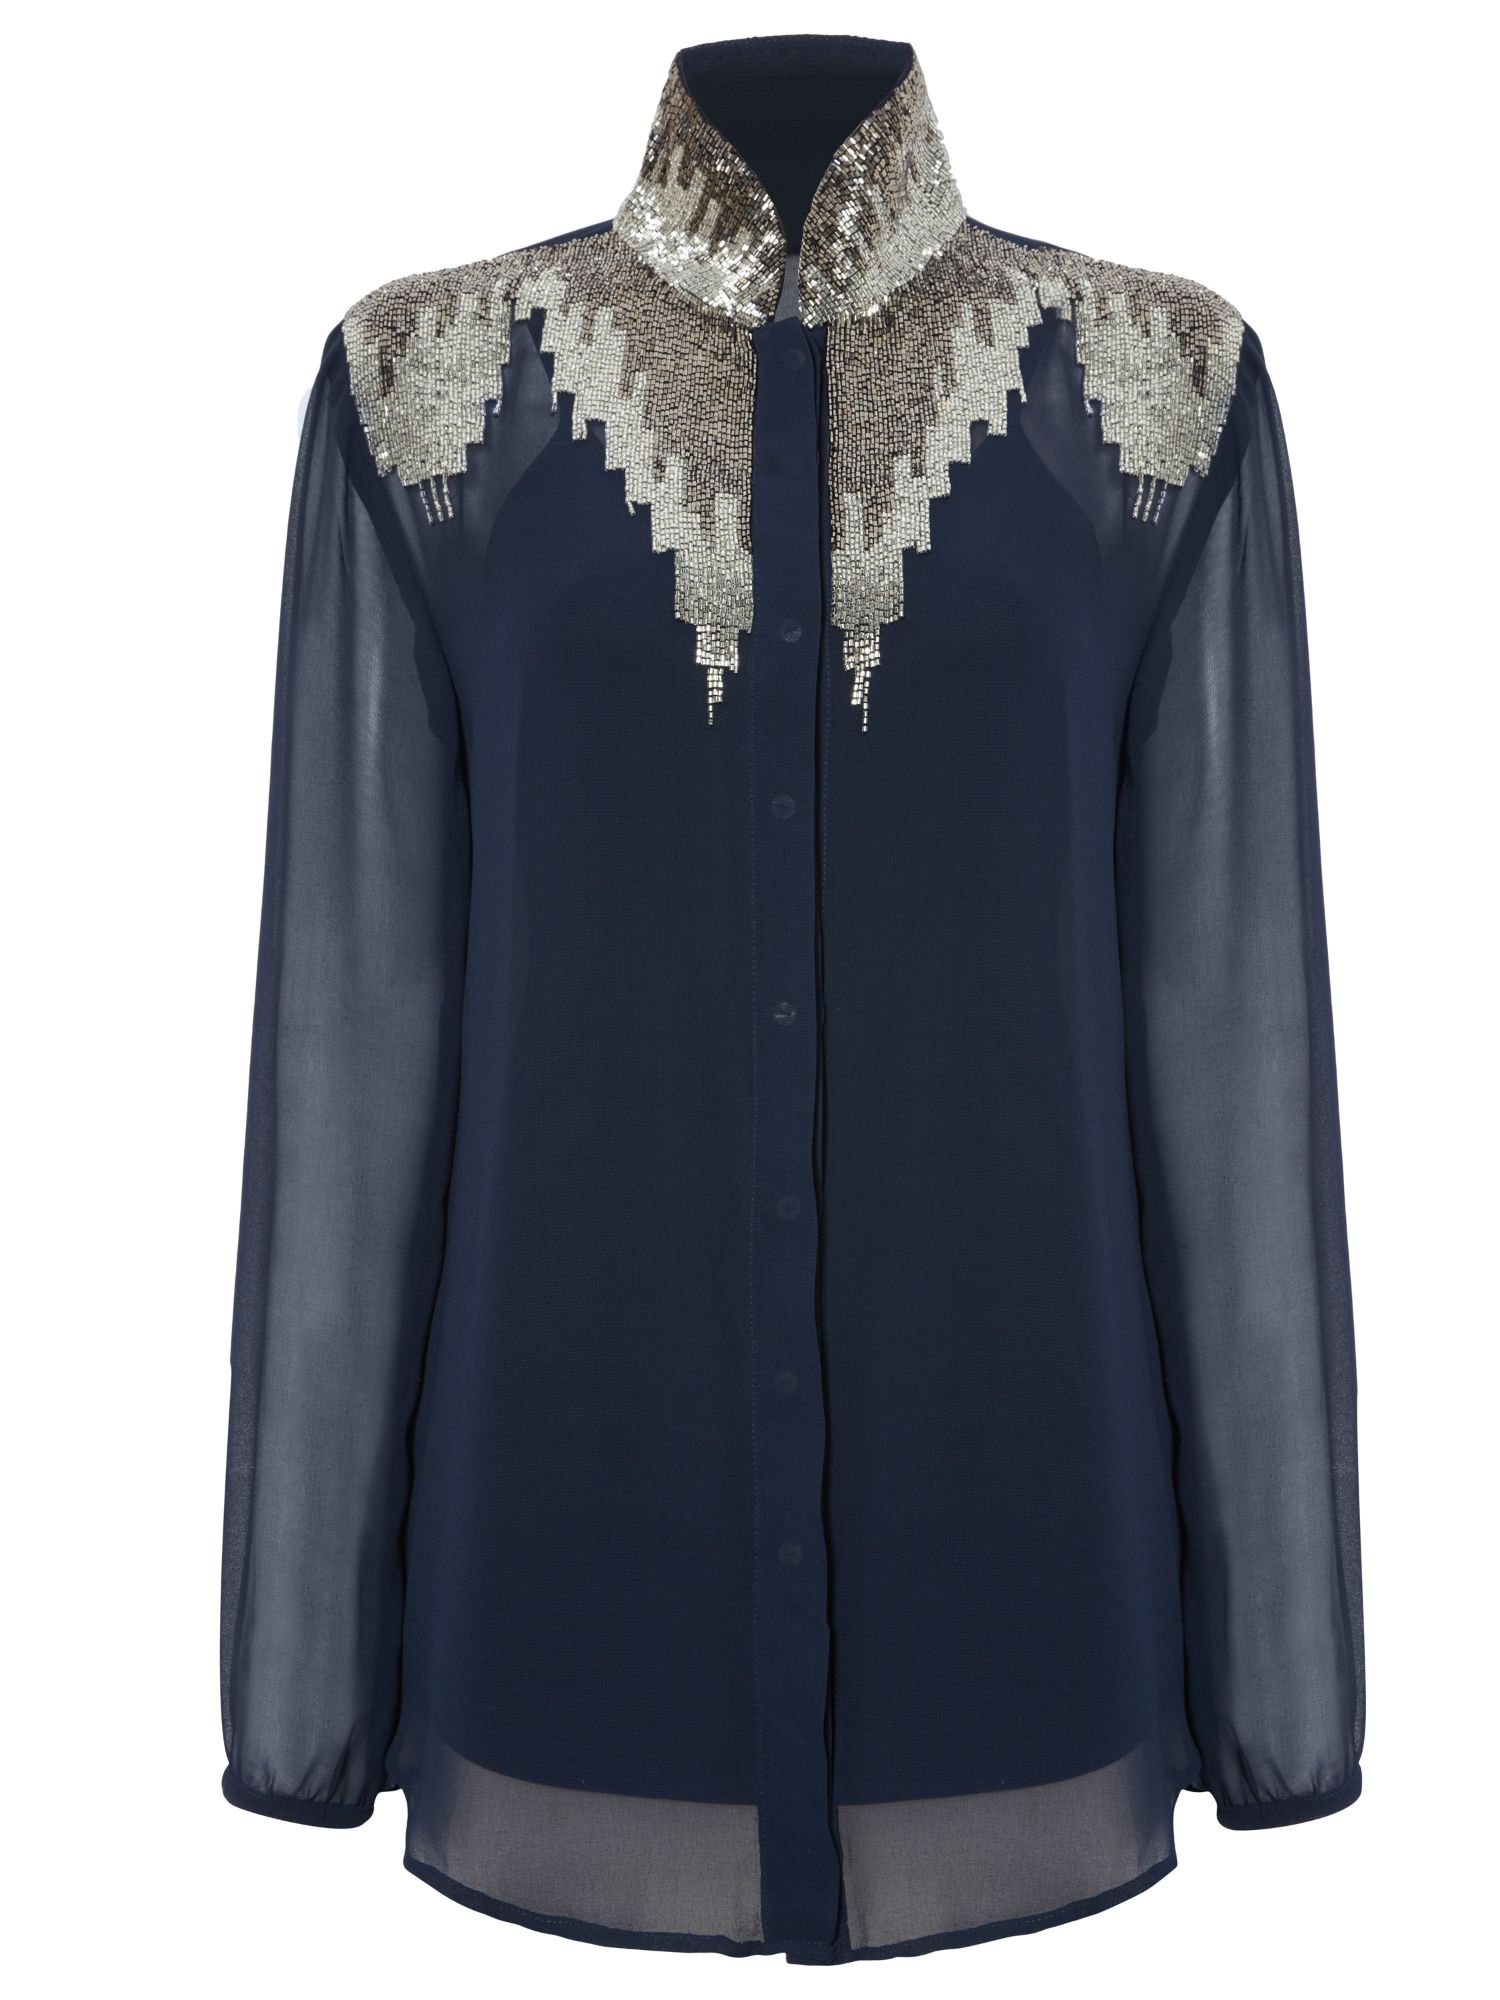 RAISHMA Embellished Detailed Shirt, Blue